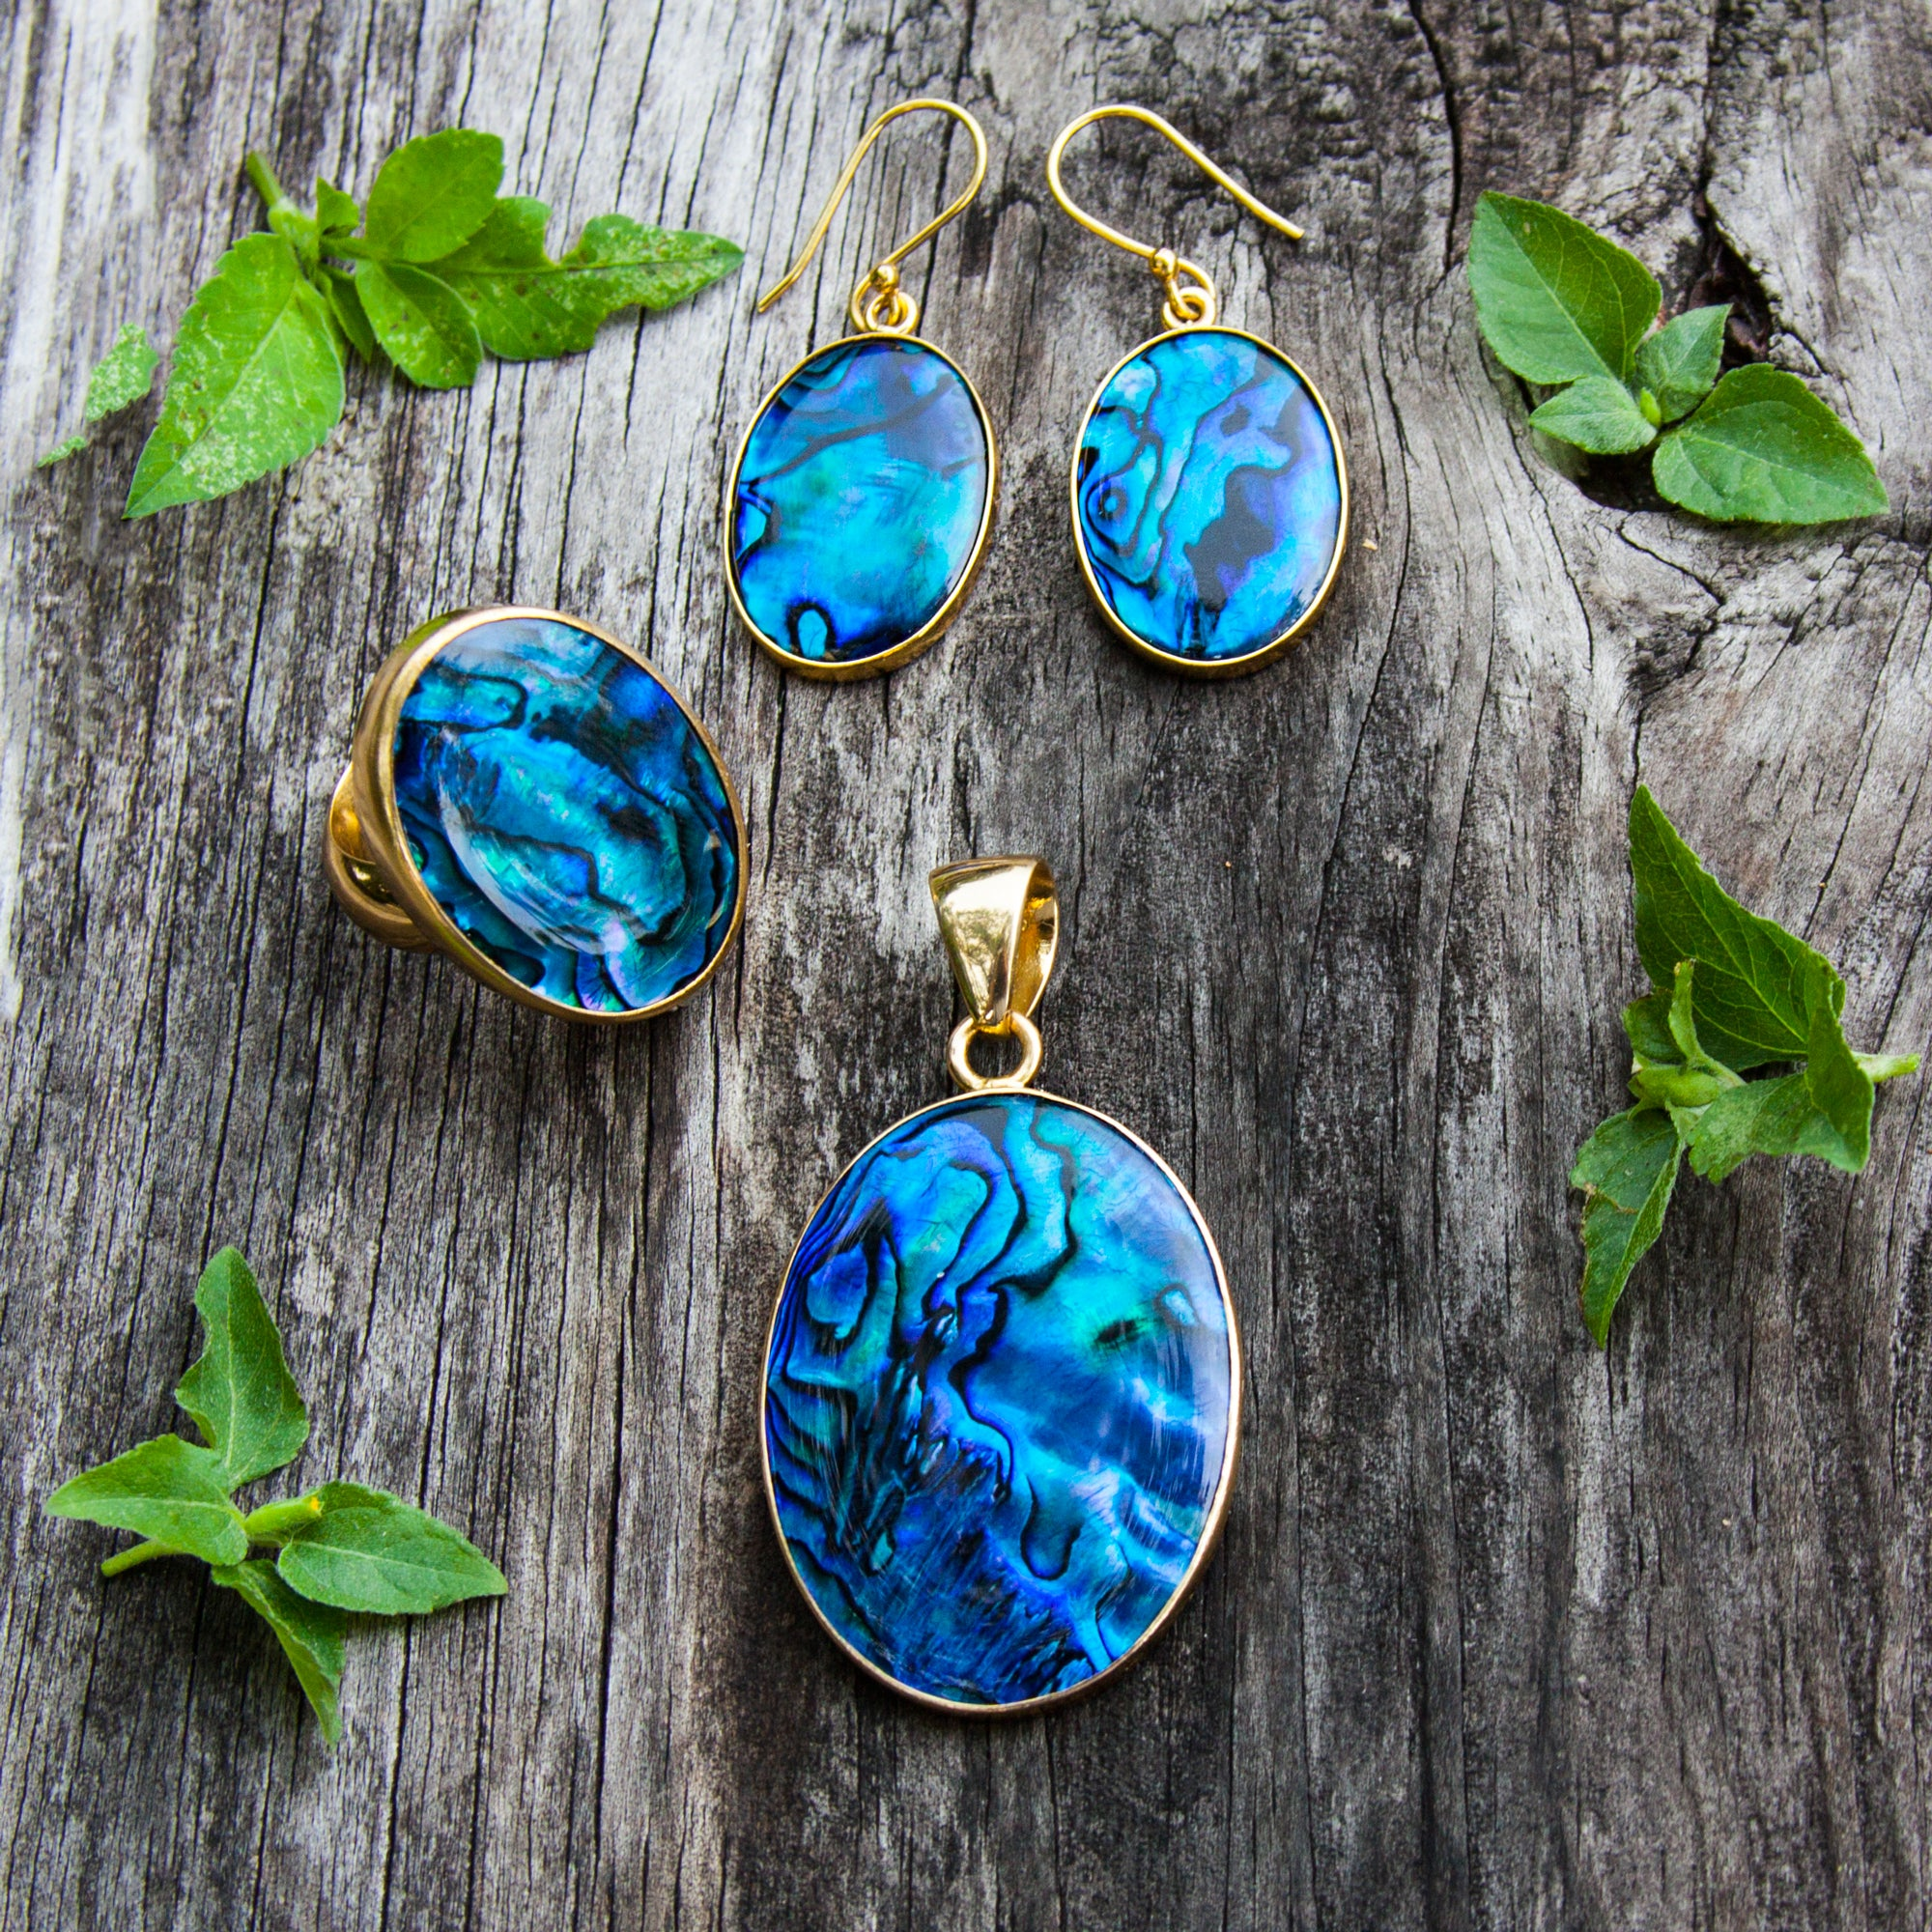 Alchemia Blue Abalone Earrings | Charles Albert Jewelry